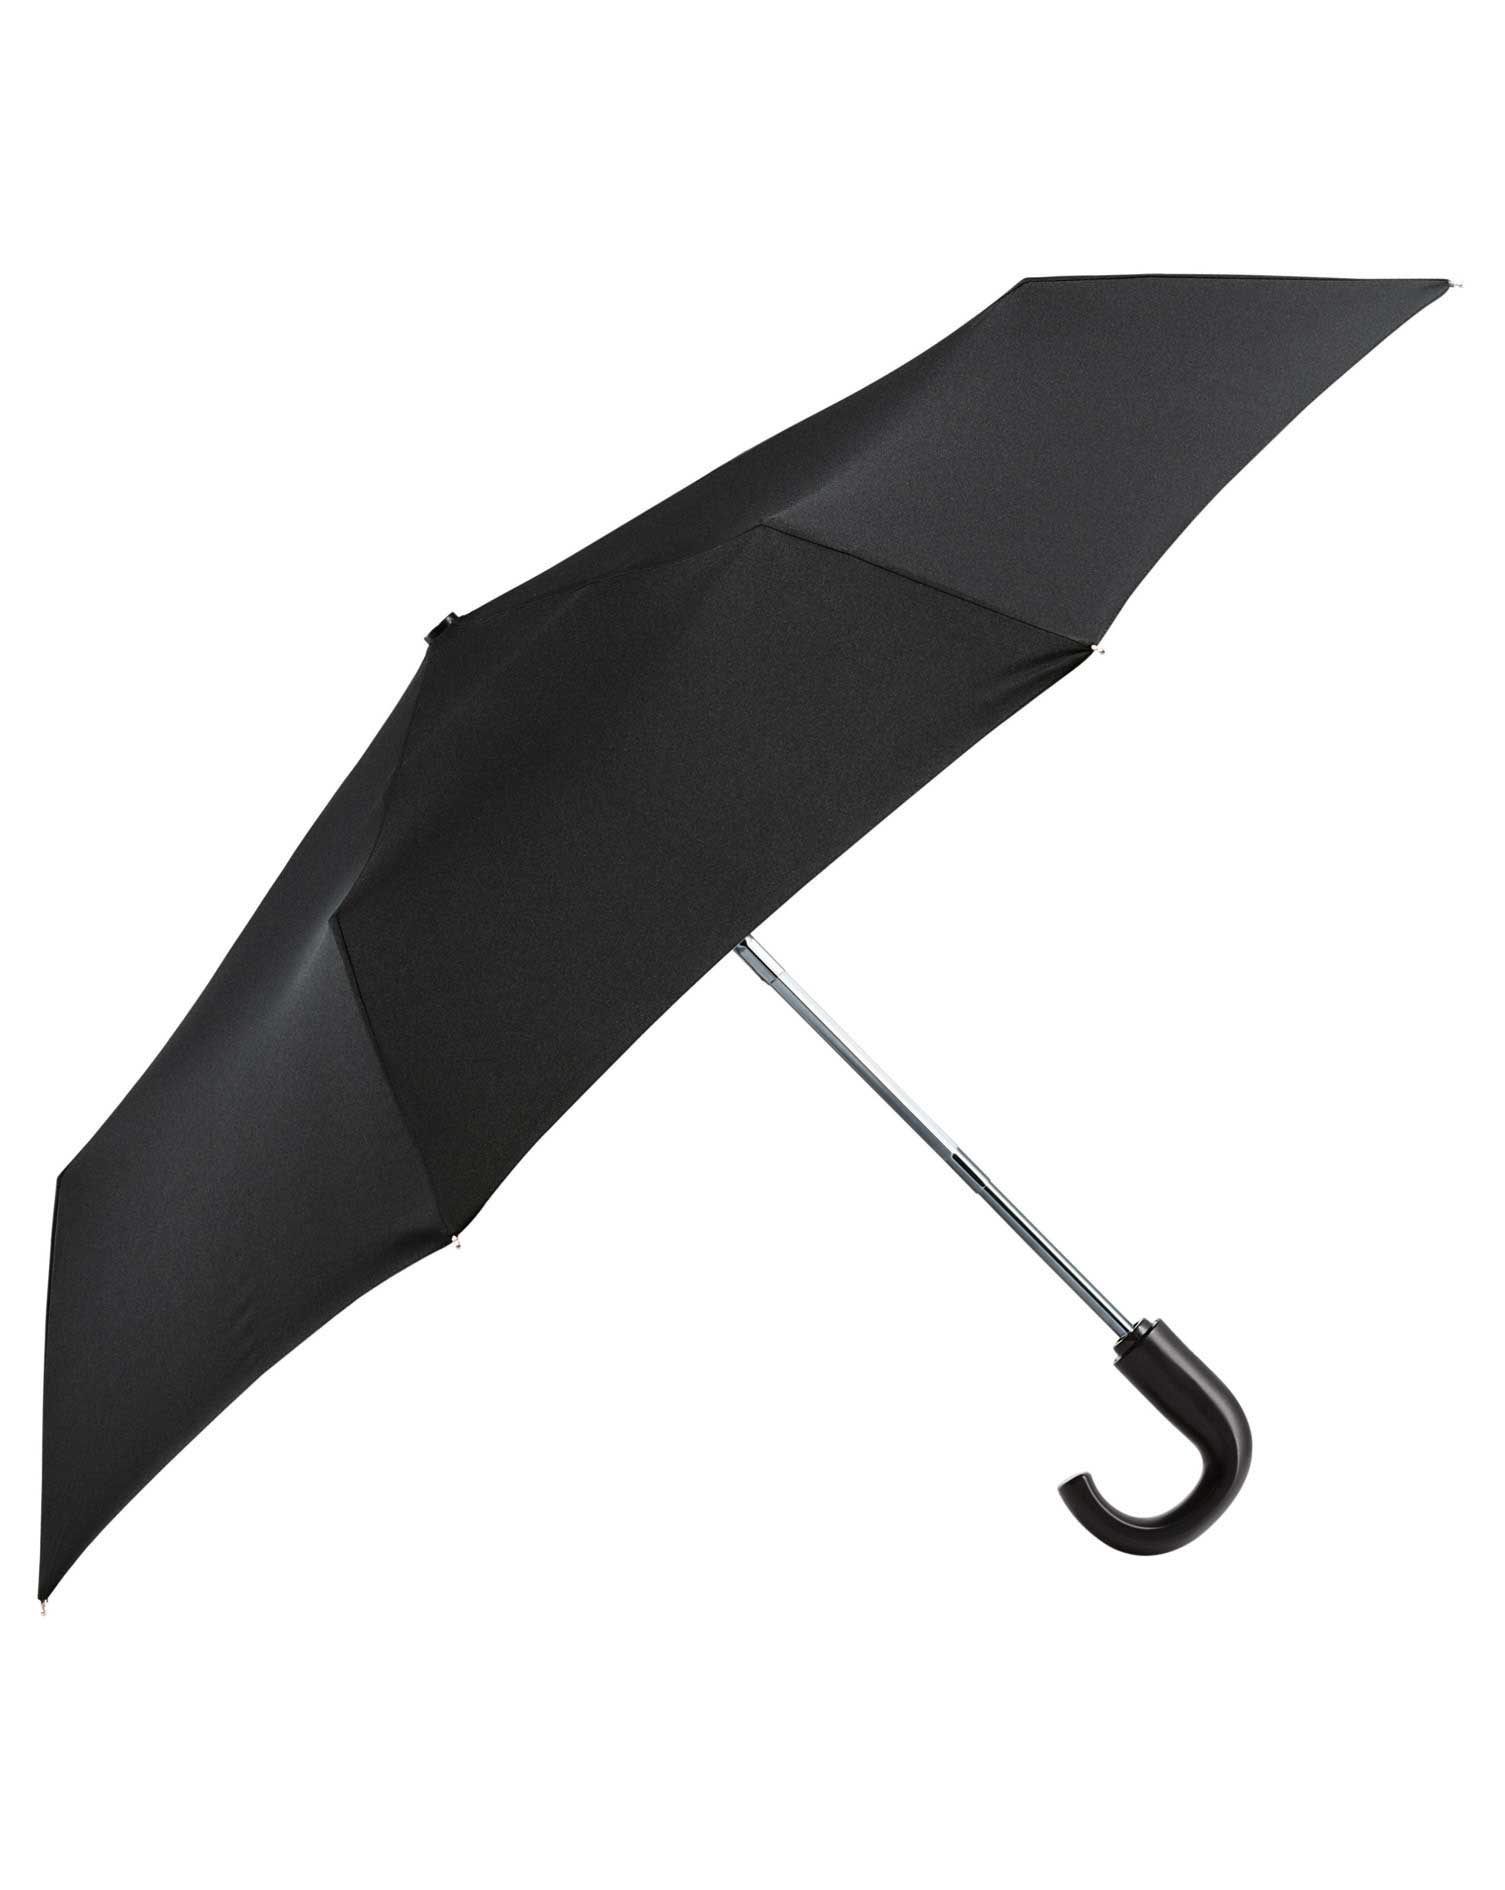 Black Automatic Compact Umbrella by Charles Tyrwhitt